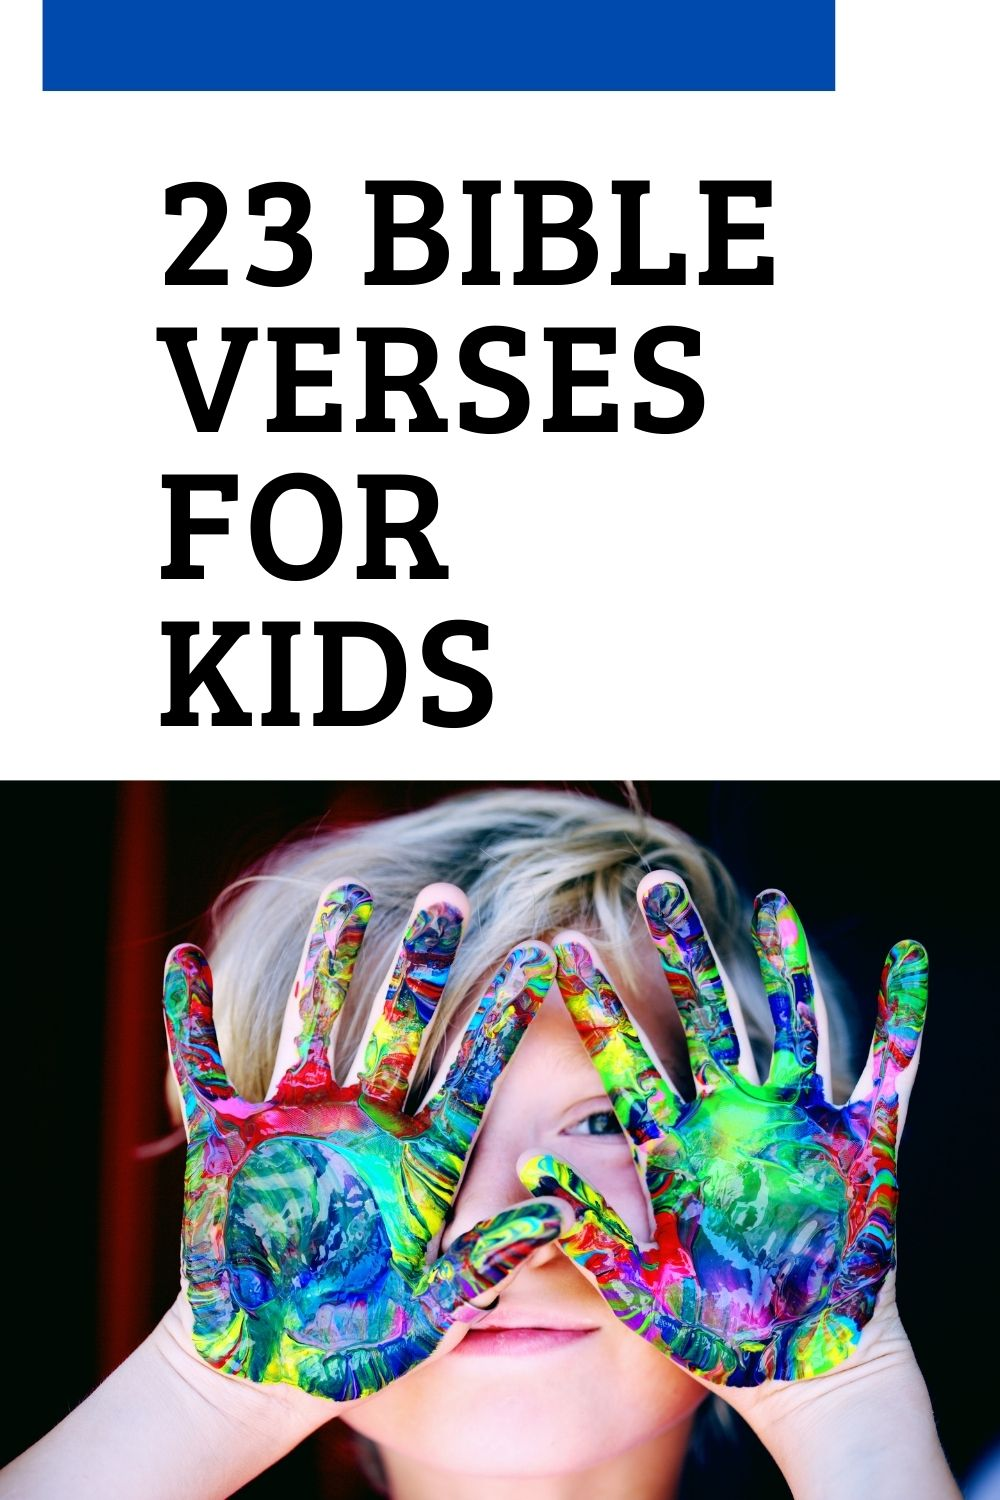 a child showing their hand covered in paint while learning bible verses for kids